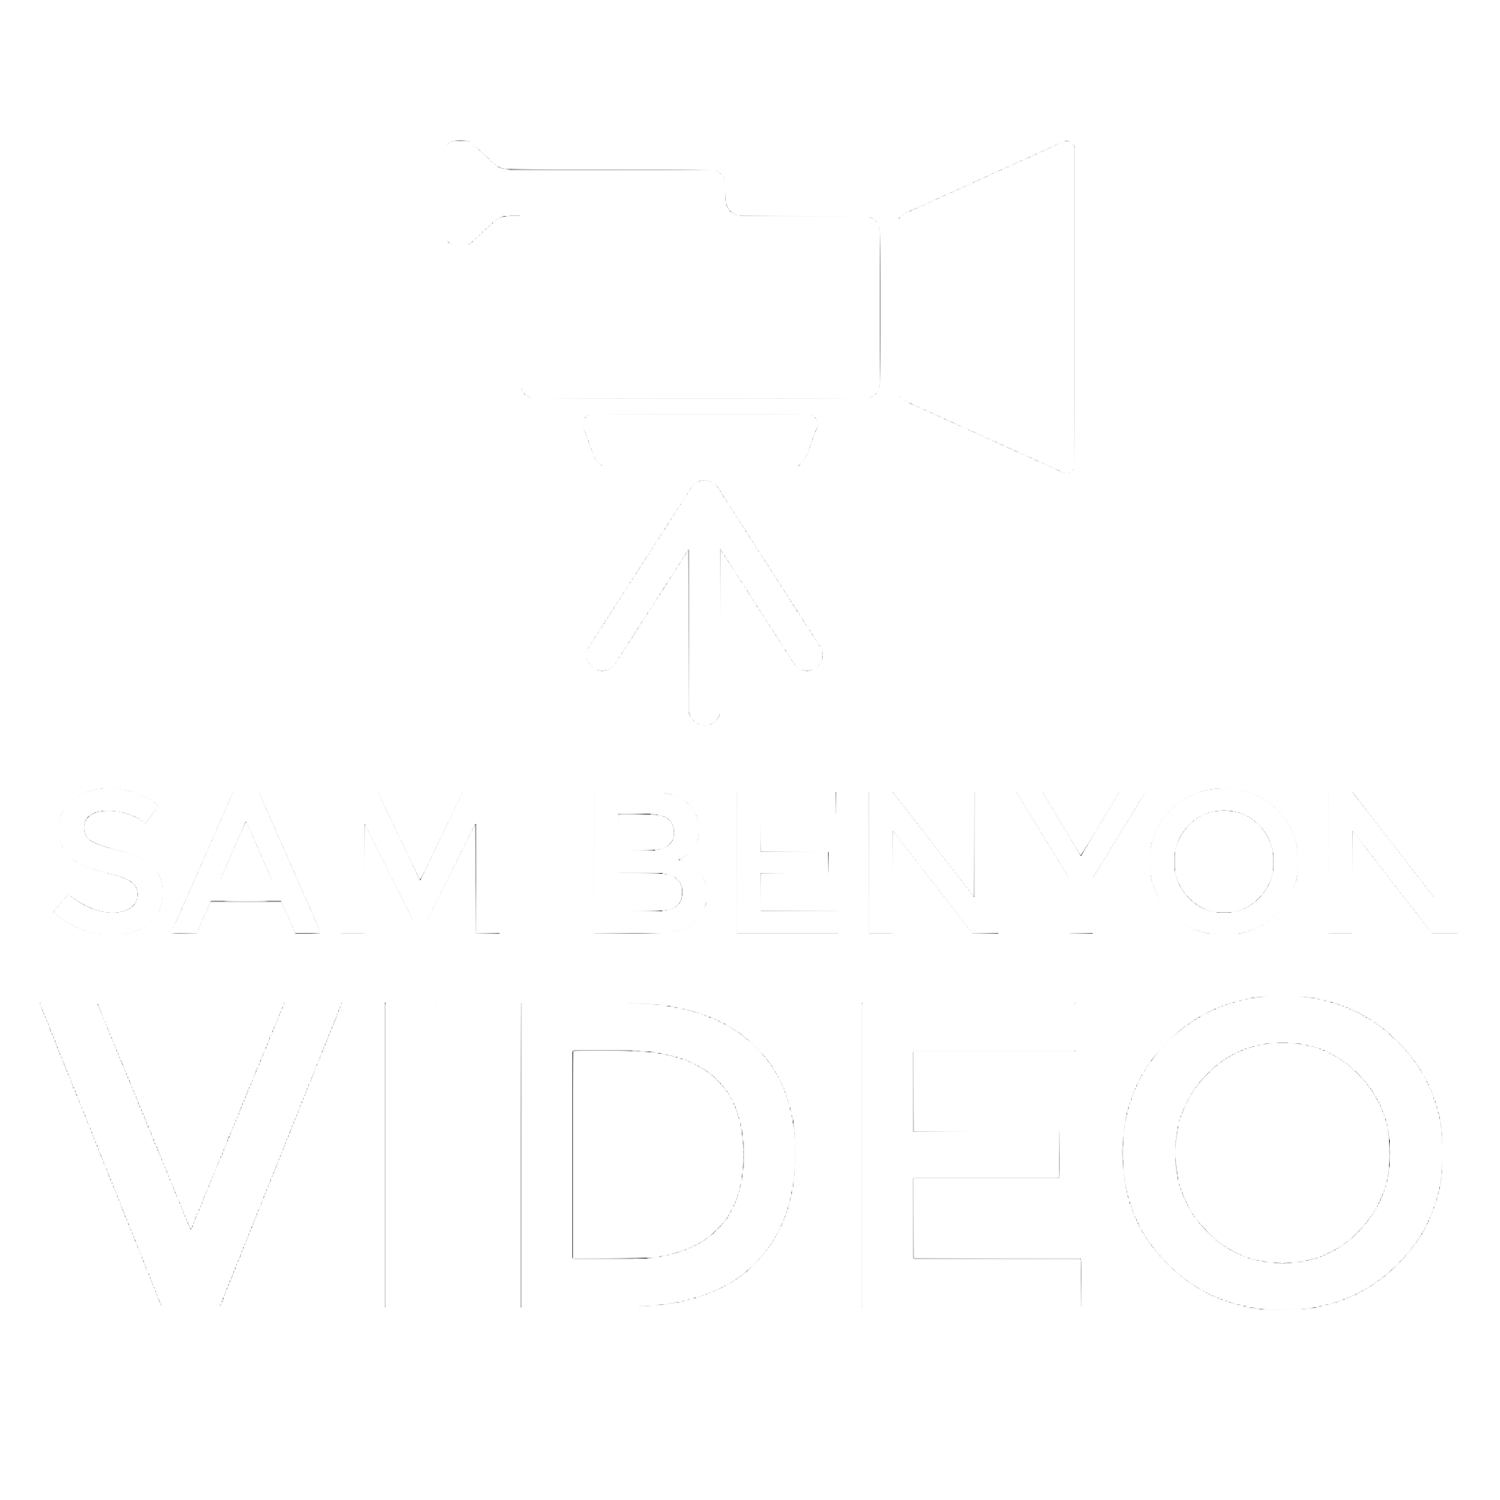 Sam Benyon Video